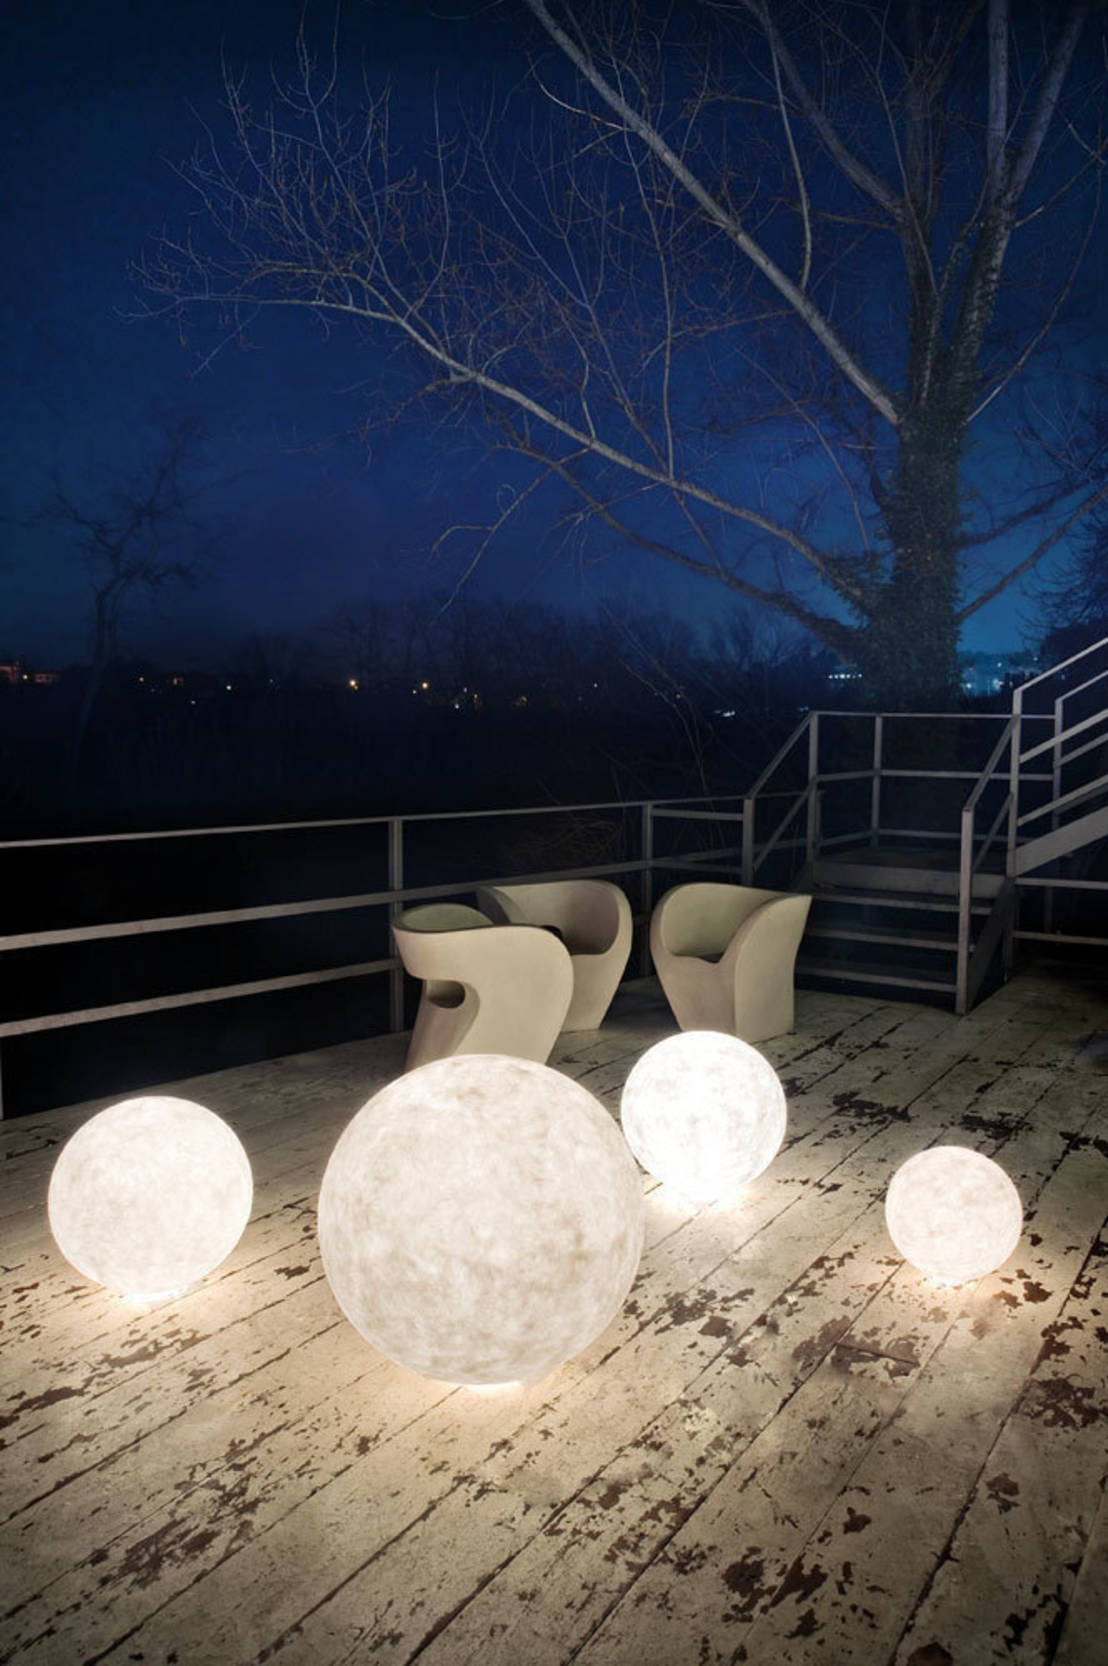 Outdoor Floor Lamps to Use on Your Deck This Summer outdoor floor lamps Outdoor Floor Lamps to Use on Your Deck This Summer Outdoor Floor Lamps to Use on Your Deck This Summer 3